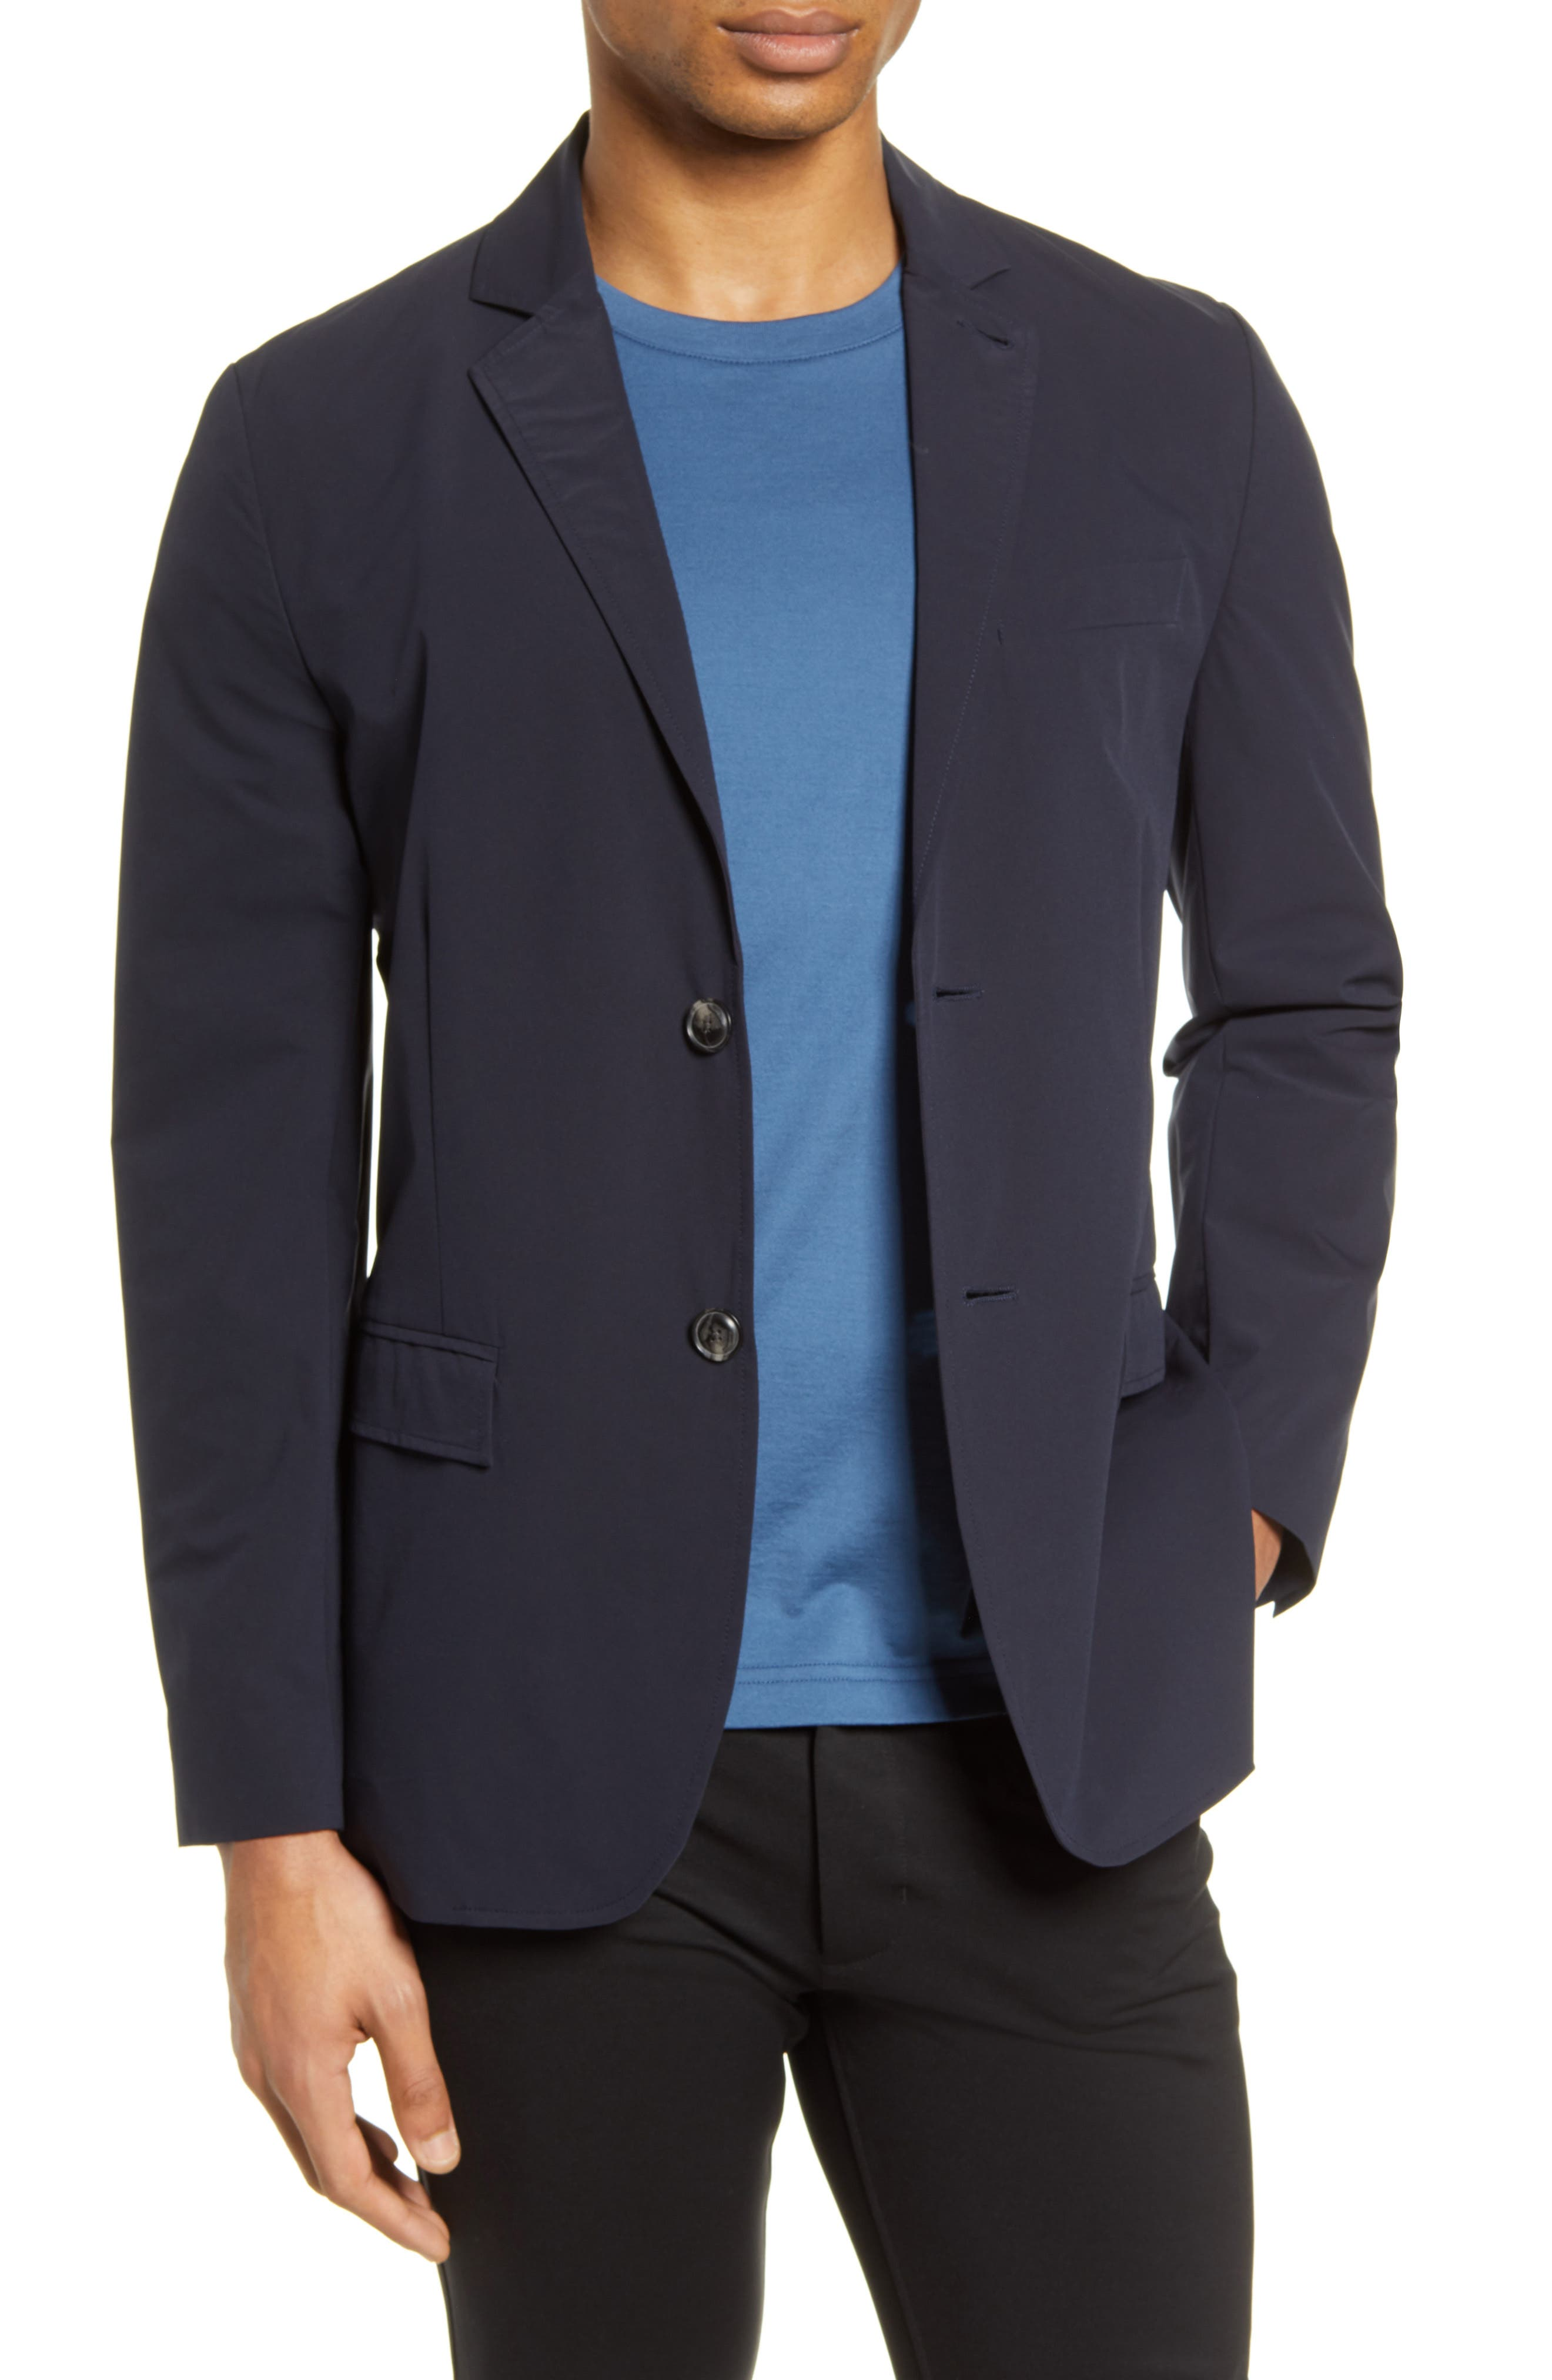 Image of 7 For All Mankind Ace Modern Blazer